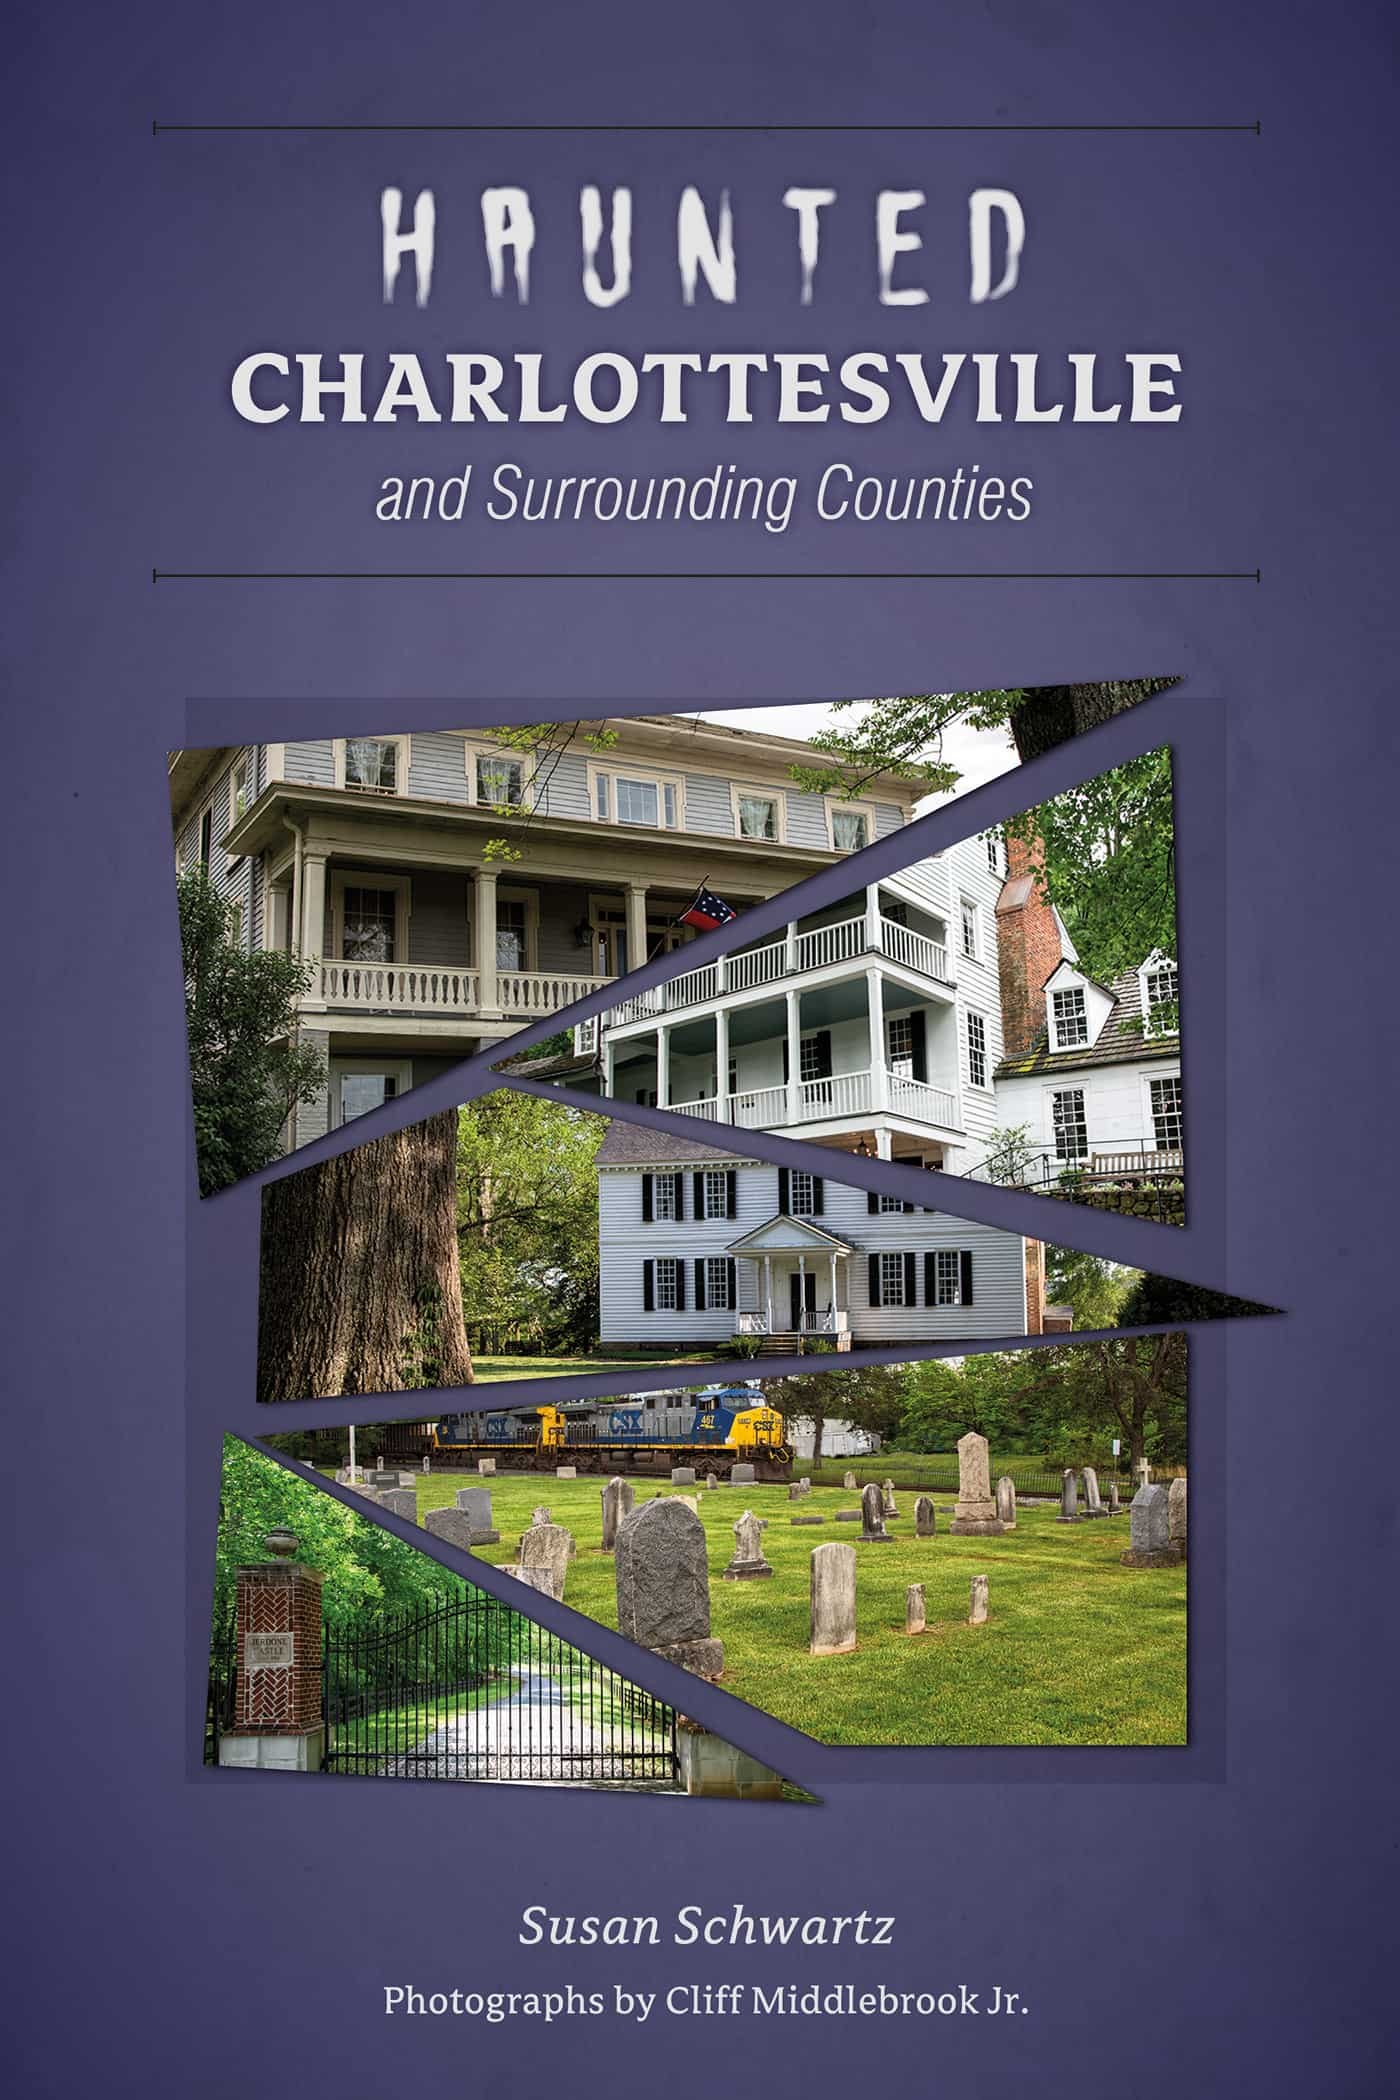 Haunted Charlottesville and Surrounding Counties by Susan Schwartz, Cliff Middlebrook Jr.